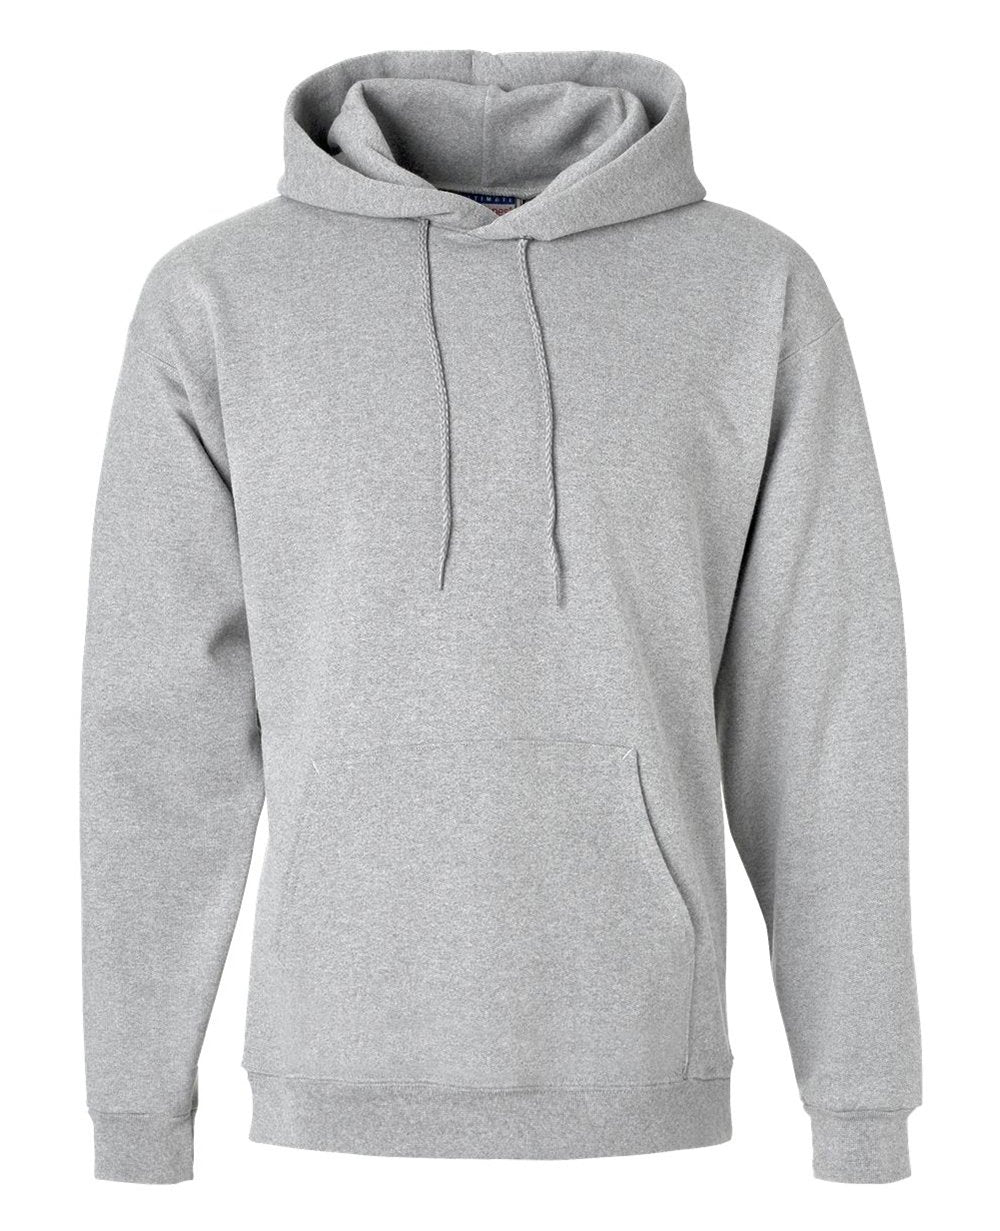 Pullover Hoodies in Light Steel